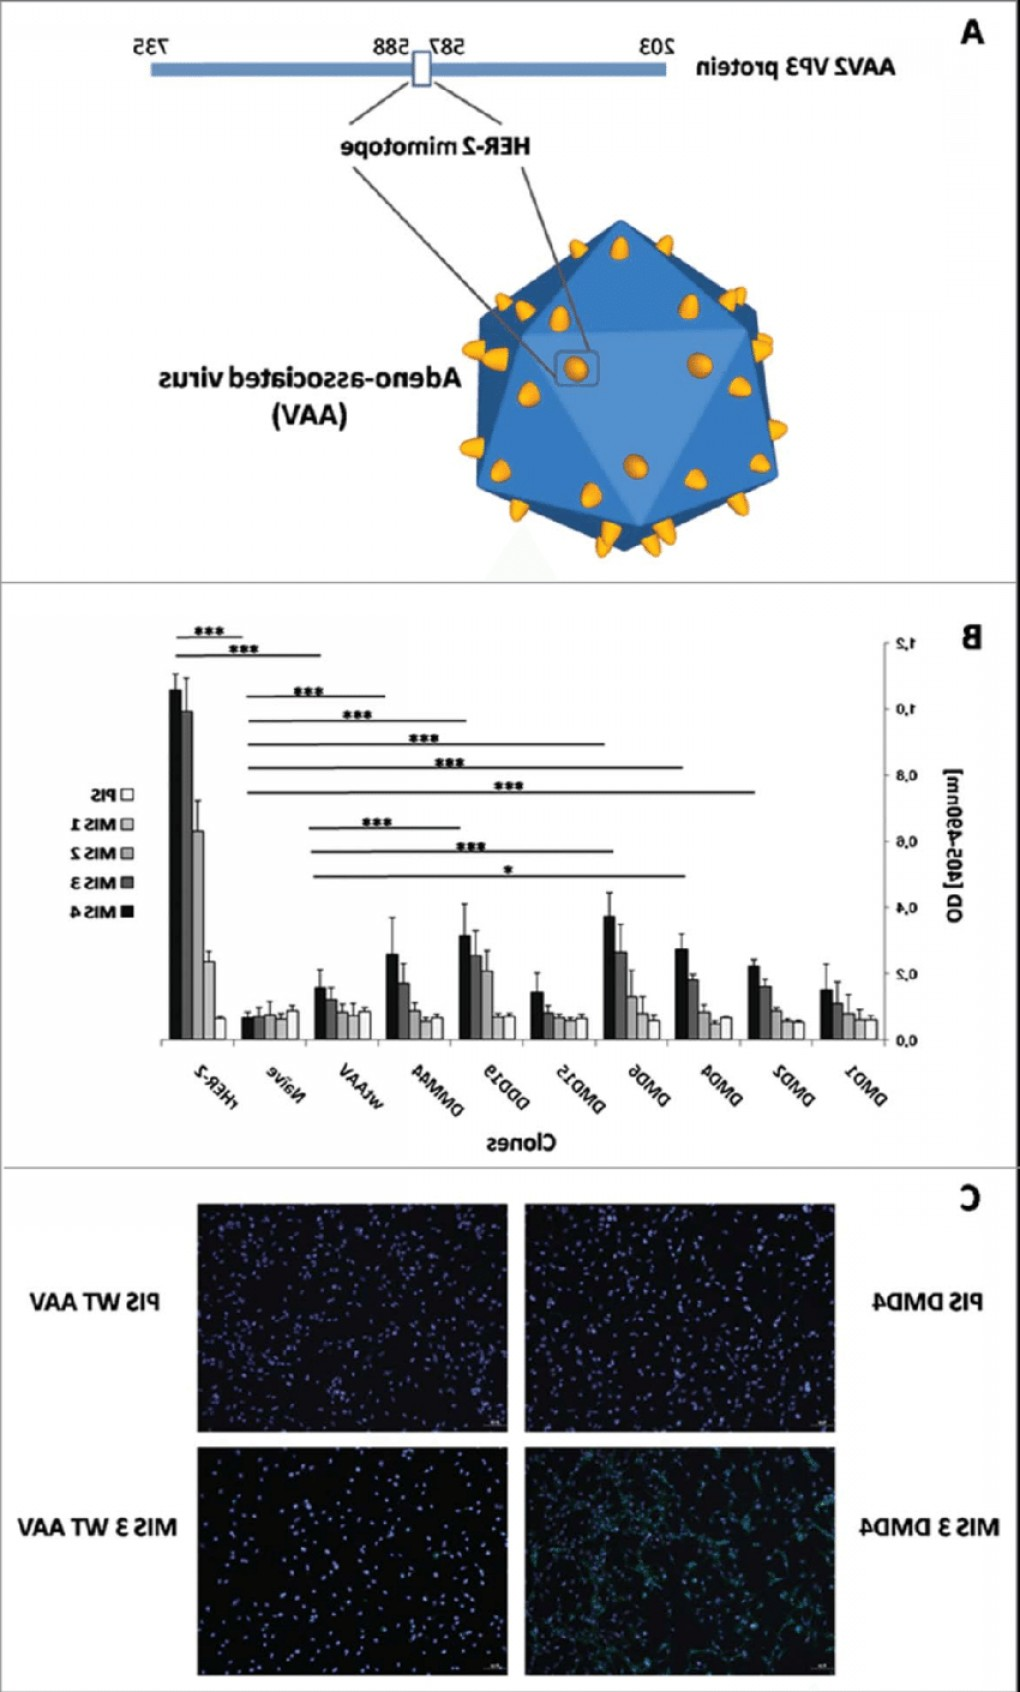 Cloning AAV Vectors: Her Mimotope Aav Model And Immunogenicity Evaluation A Model Of The Aav Vectorfig